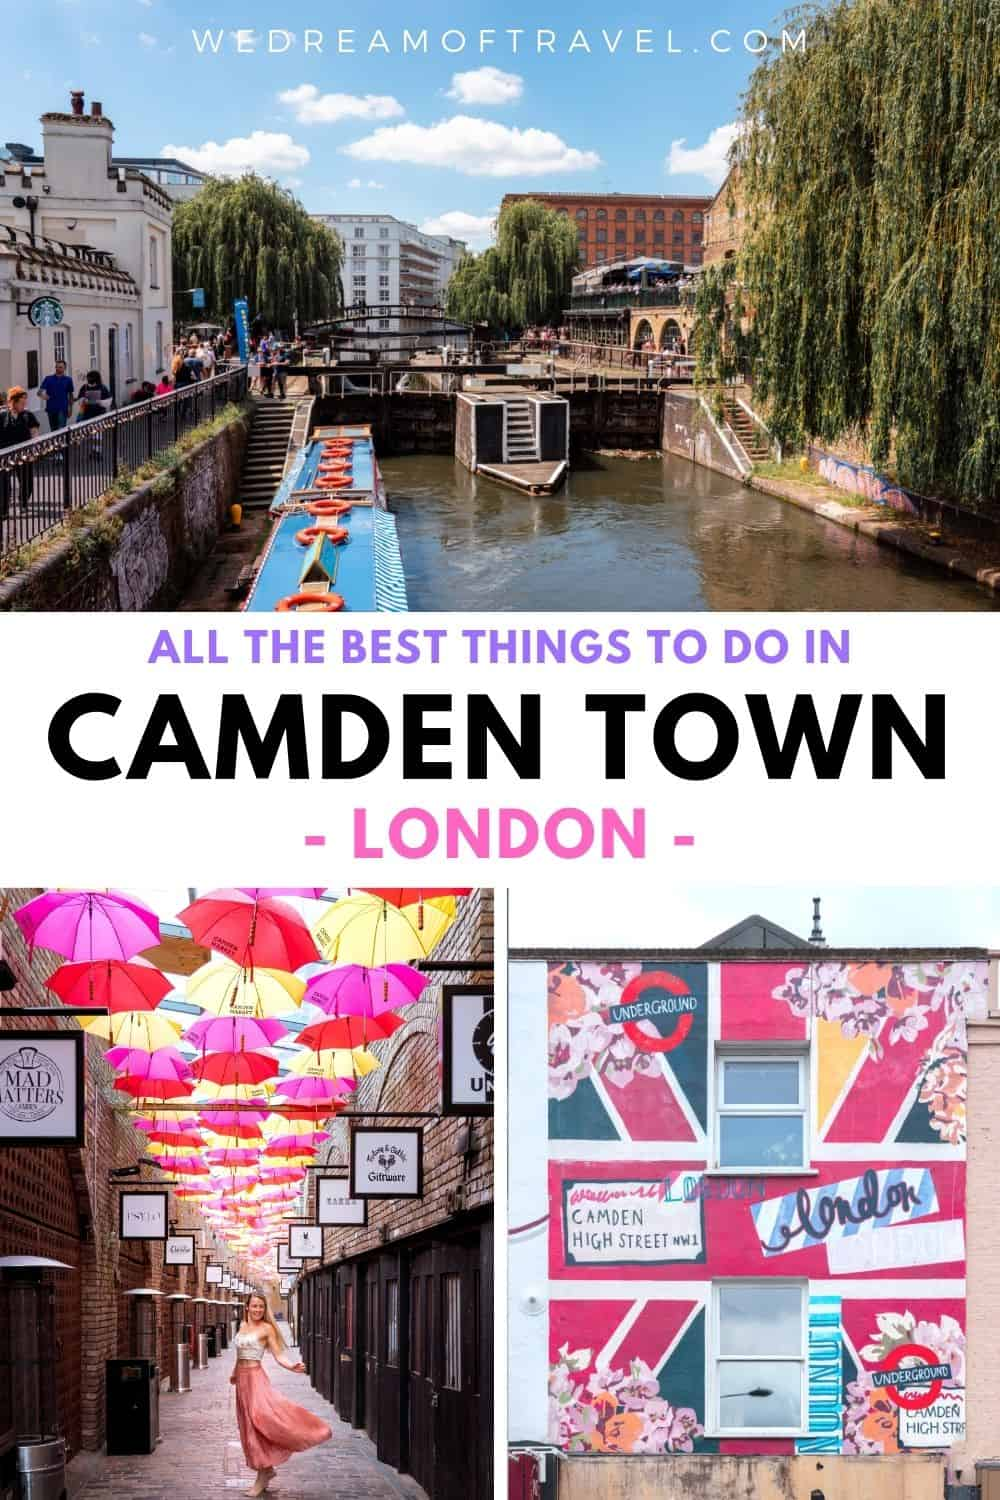 Discover the most eclectic and fun neighbourhood in London.  You'll find plenty of things to do in Camden Town and nearby including the iconic Camden Market as well as local secrets.  #Camden #CamdenTown #London #LondonTravel #CamdenLondon